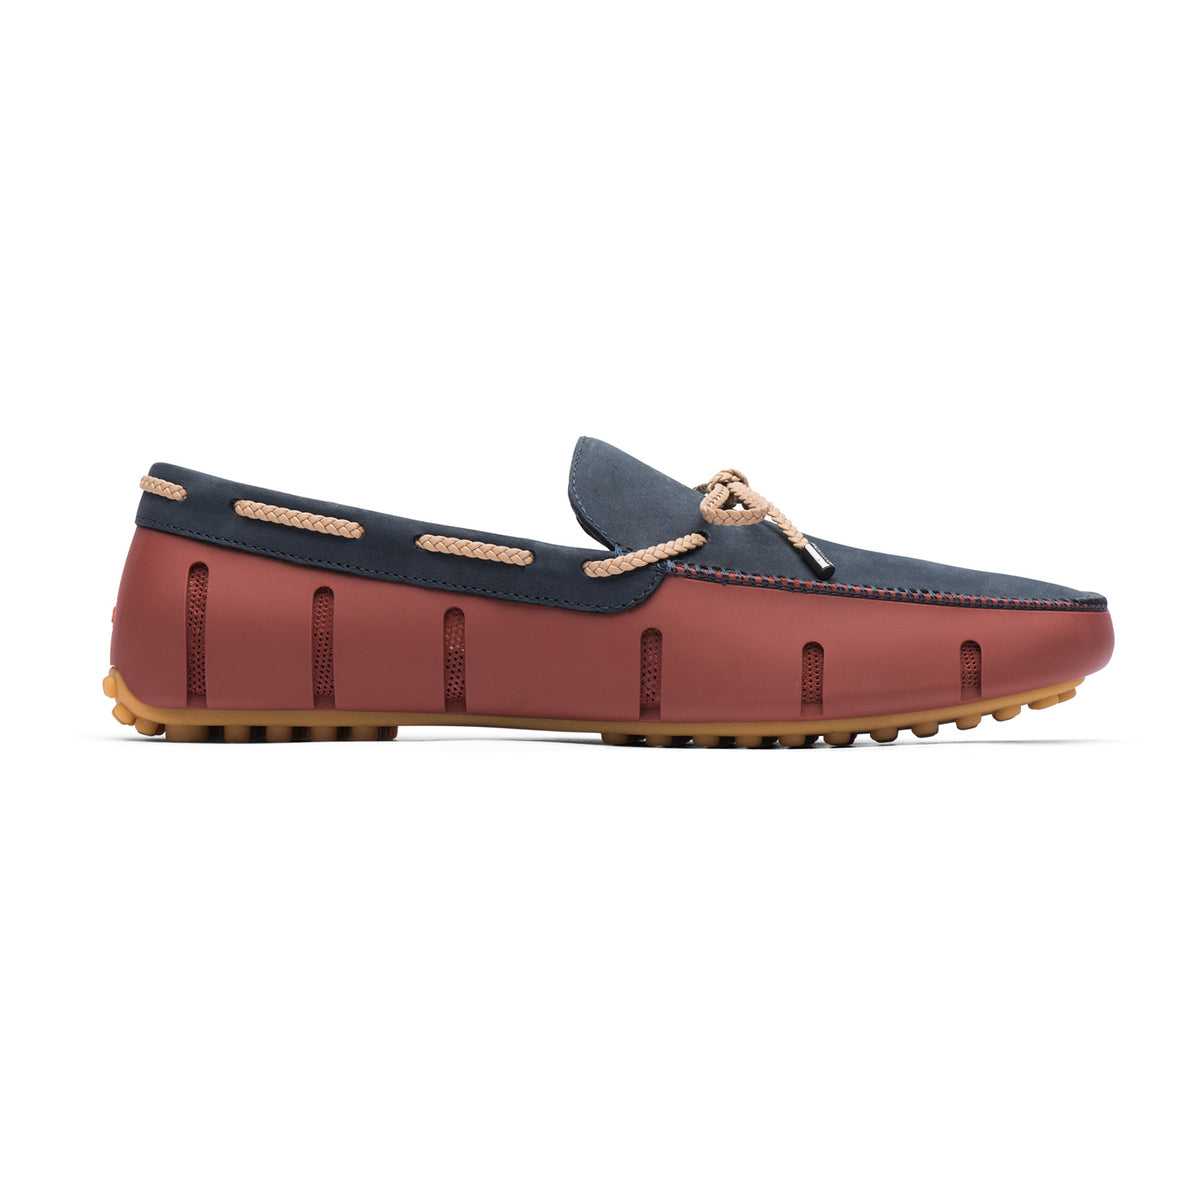 Braided Lace Lux Loafer Driver Nubuck - background::white,variant::Red Lacquer/Navy/Gum